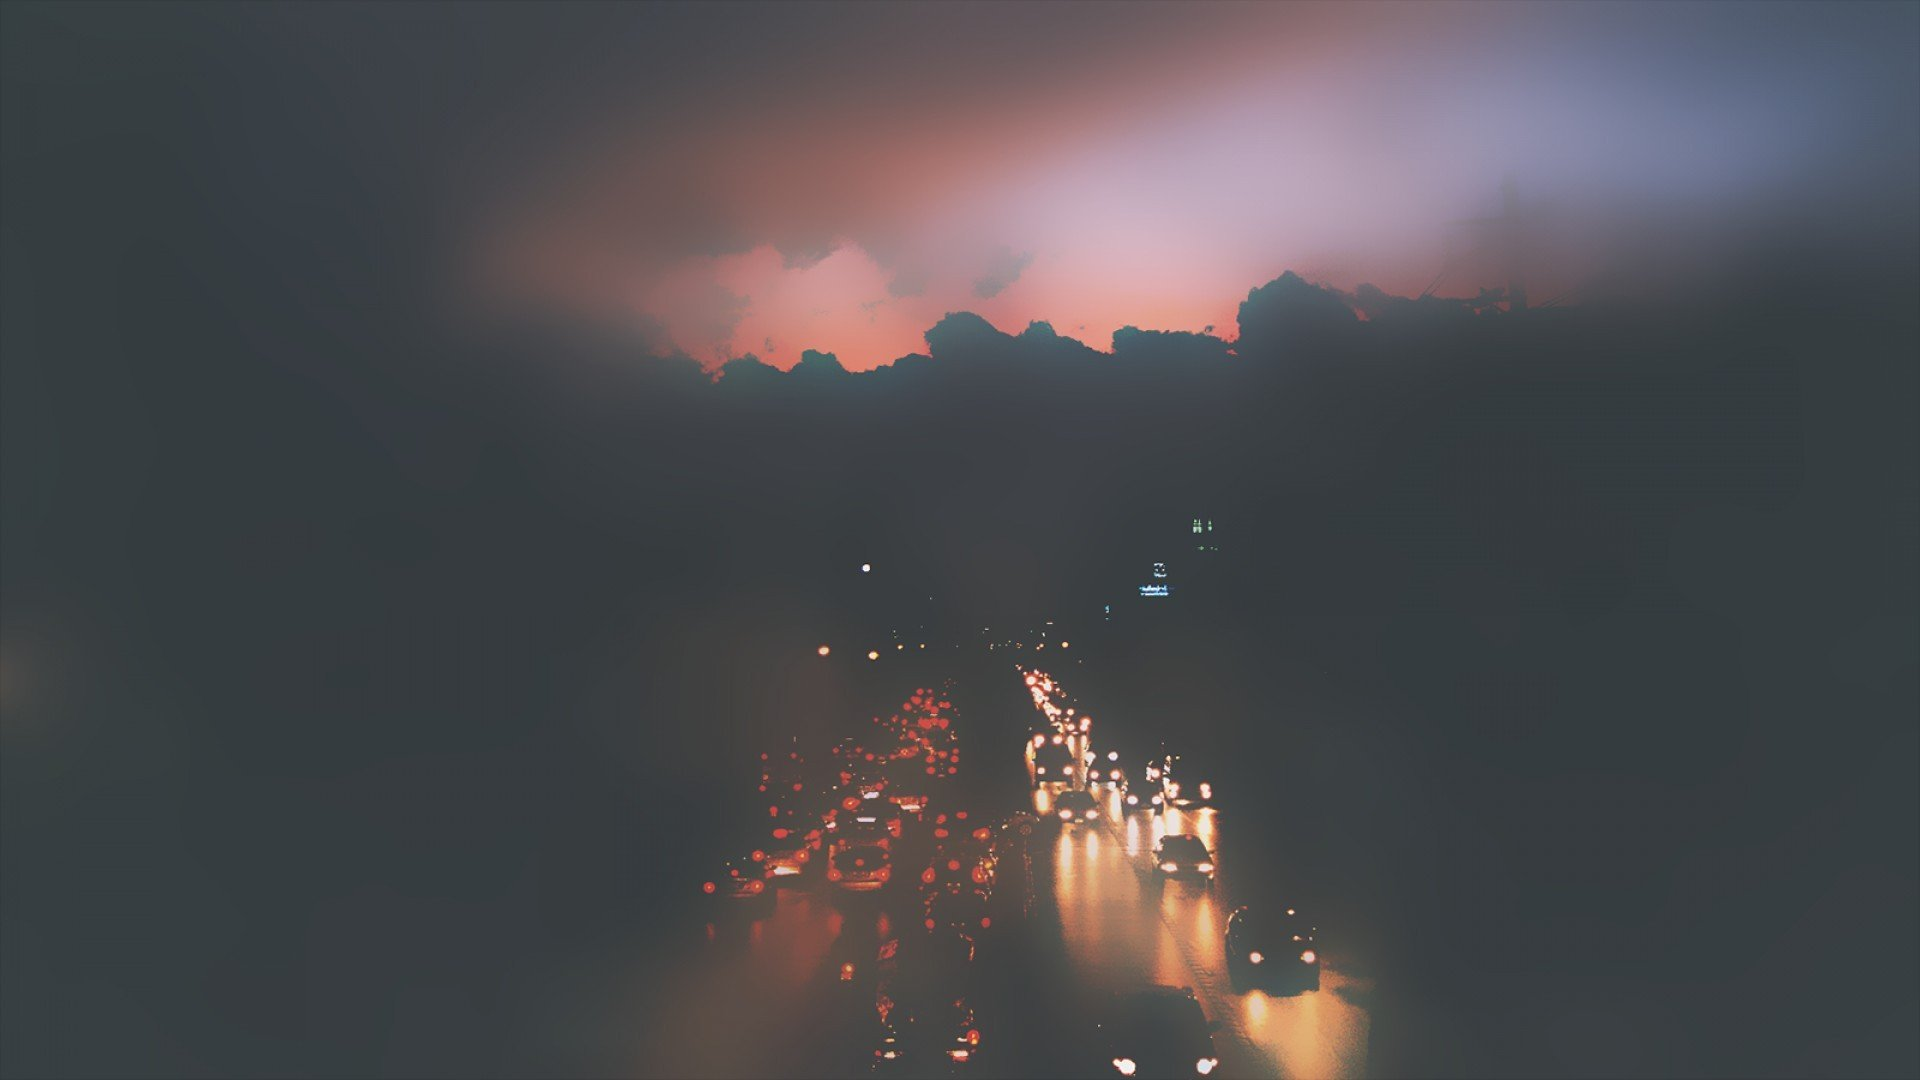 Car Lights Night Wallpaper Cars Fog Mist Traffic Roads Cities Atmospheric Car Lights